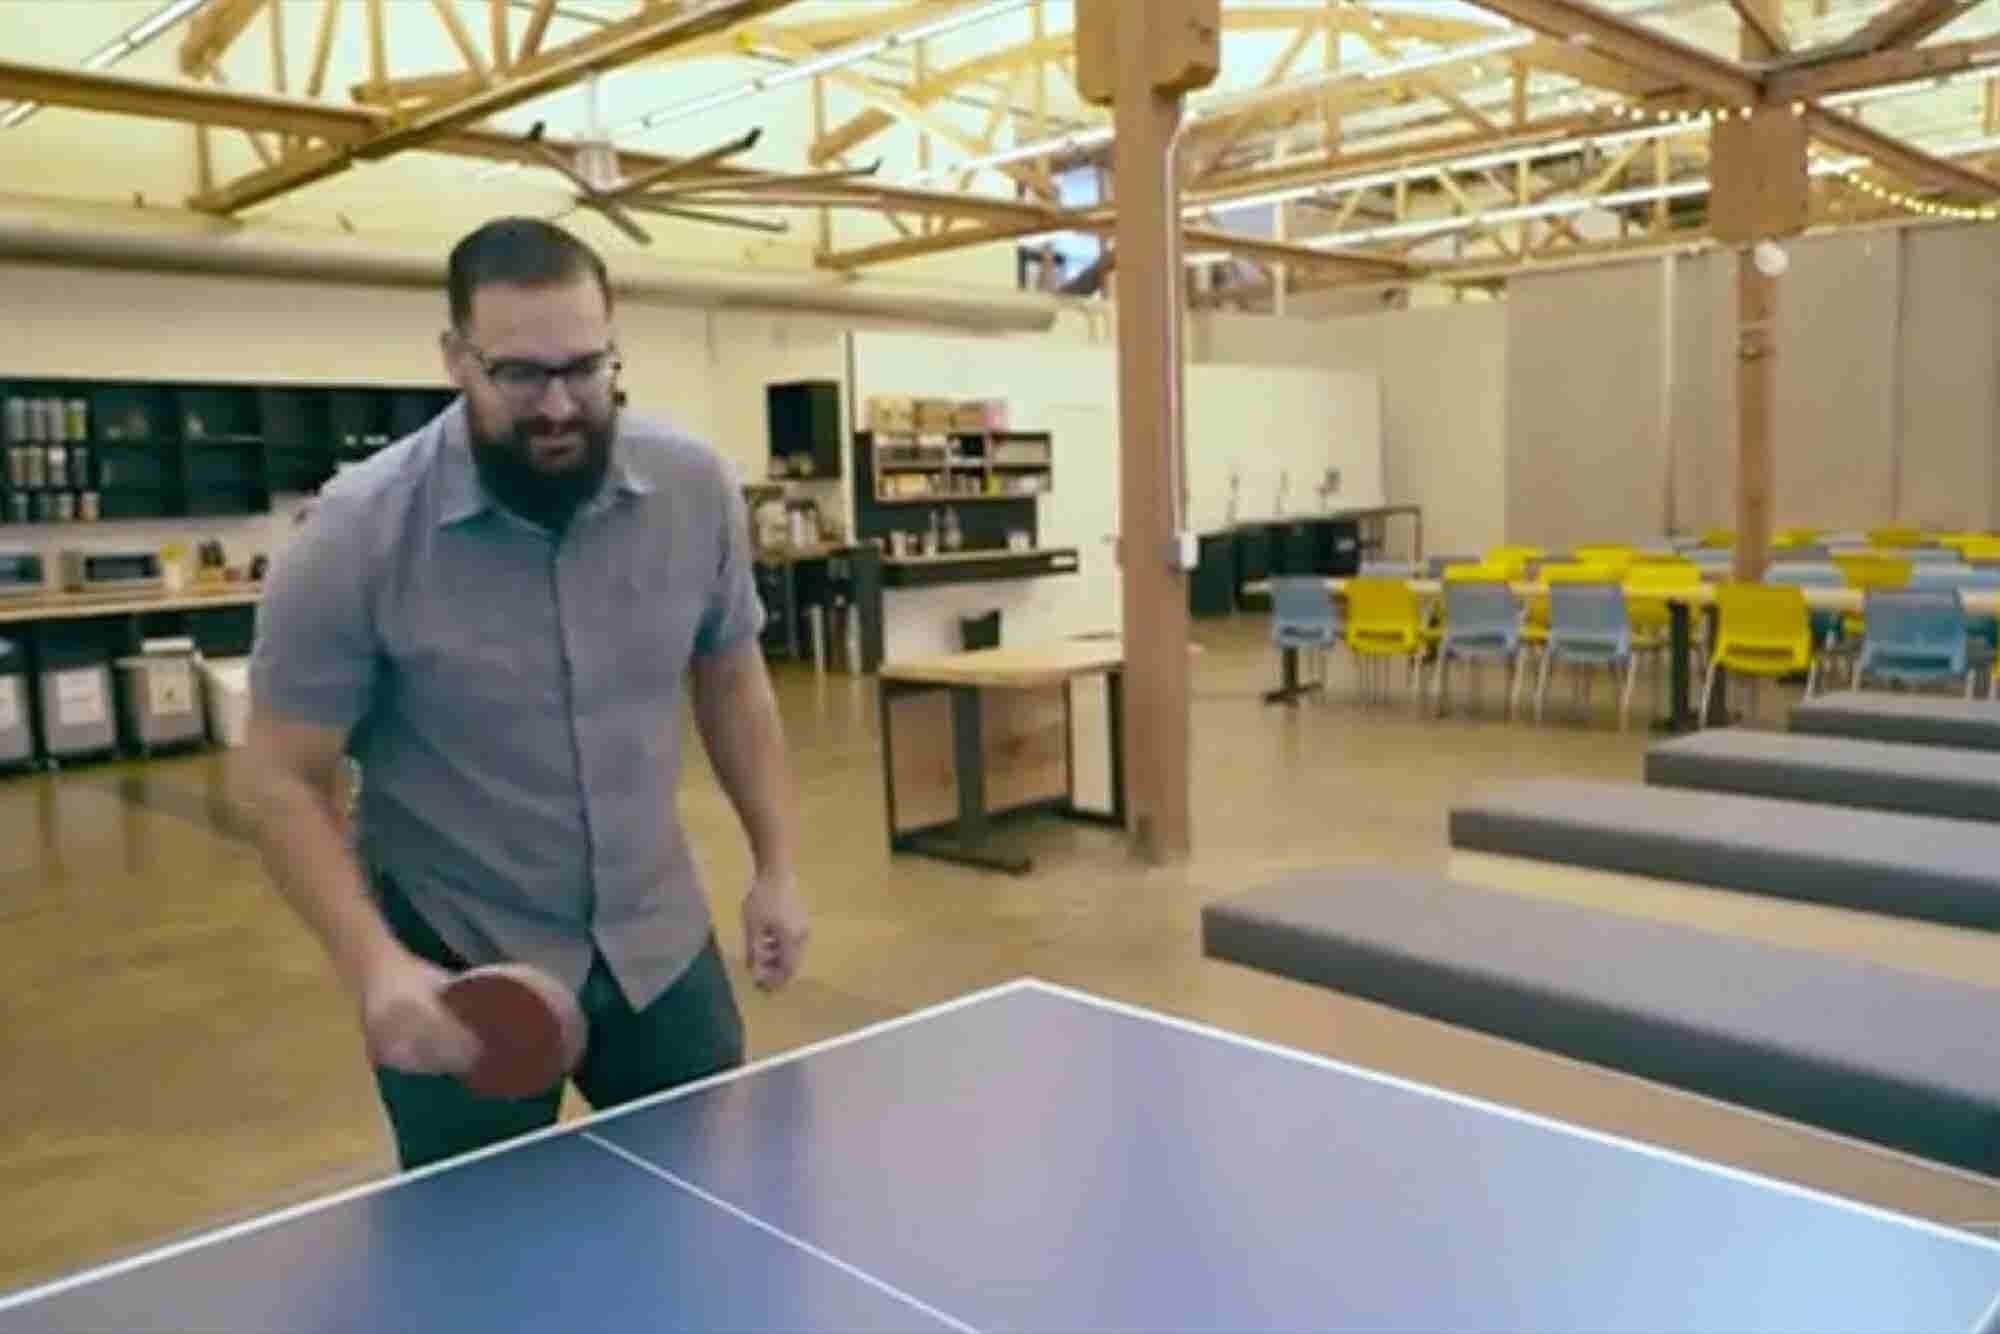 This Travel Company's Headquarters Has Ping-Pong Tables and Kombucha on Tap